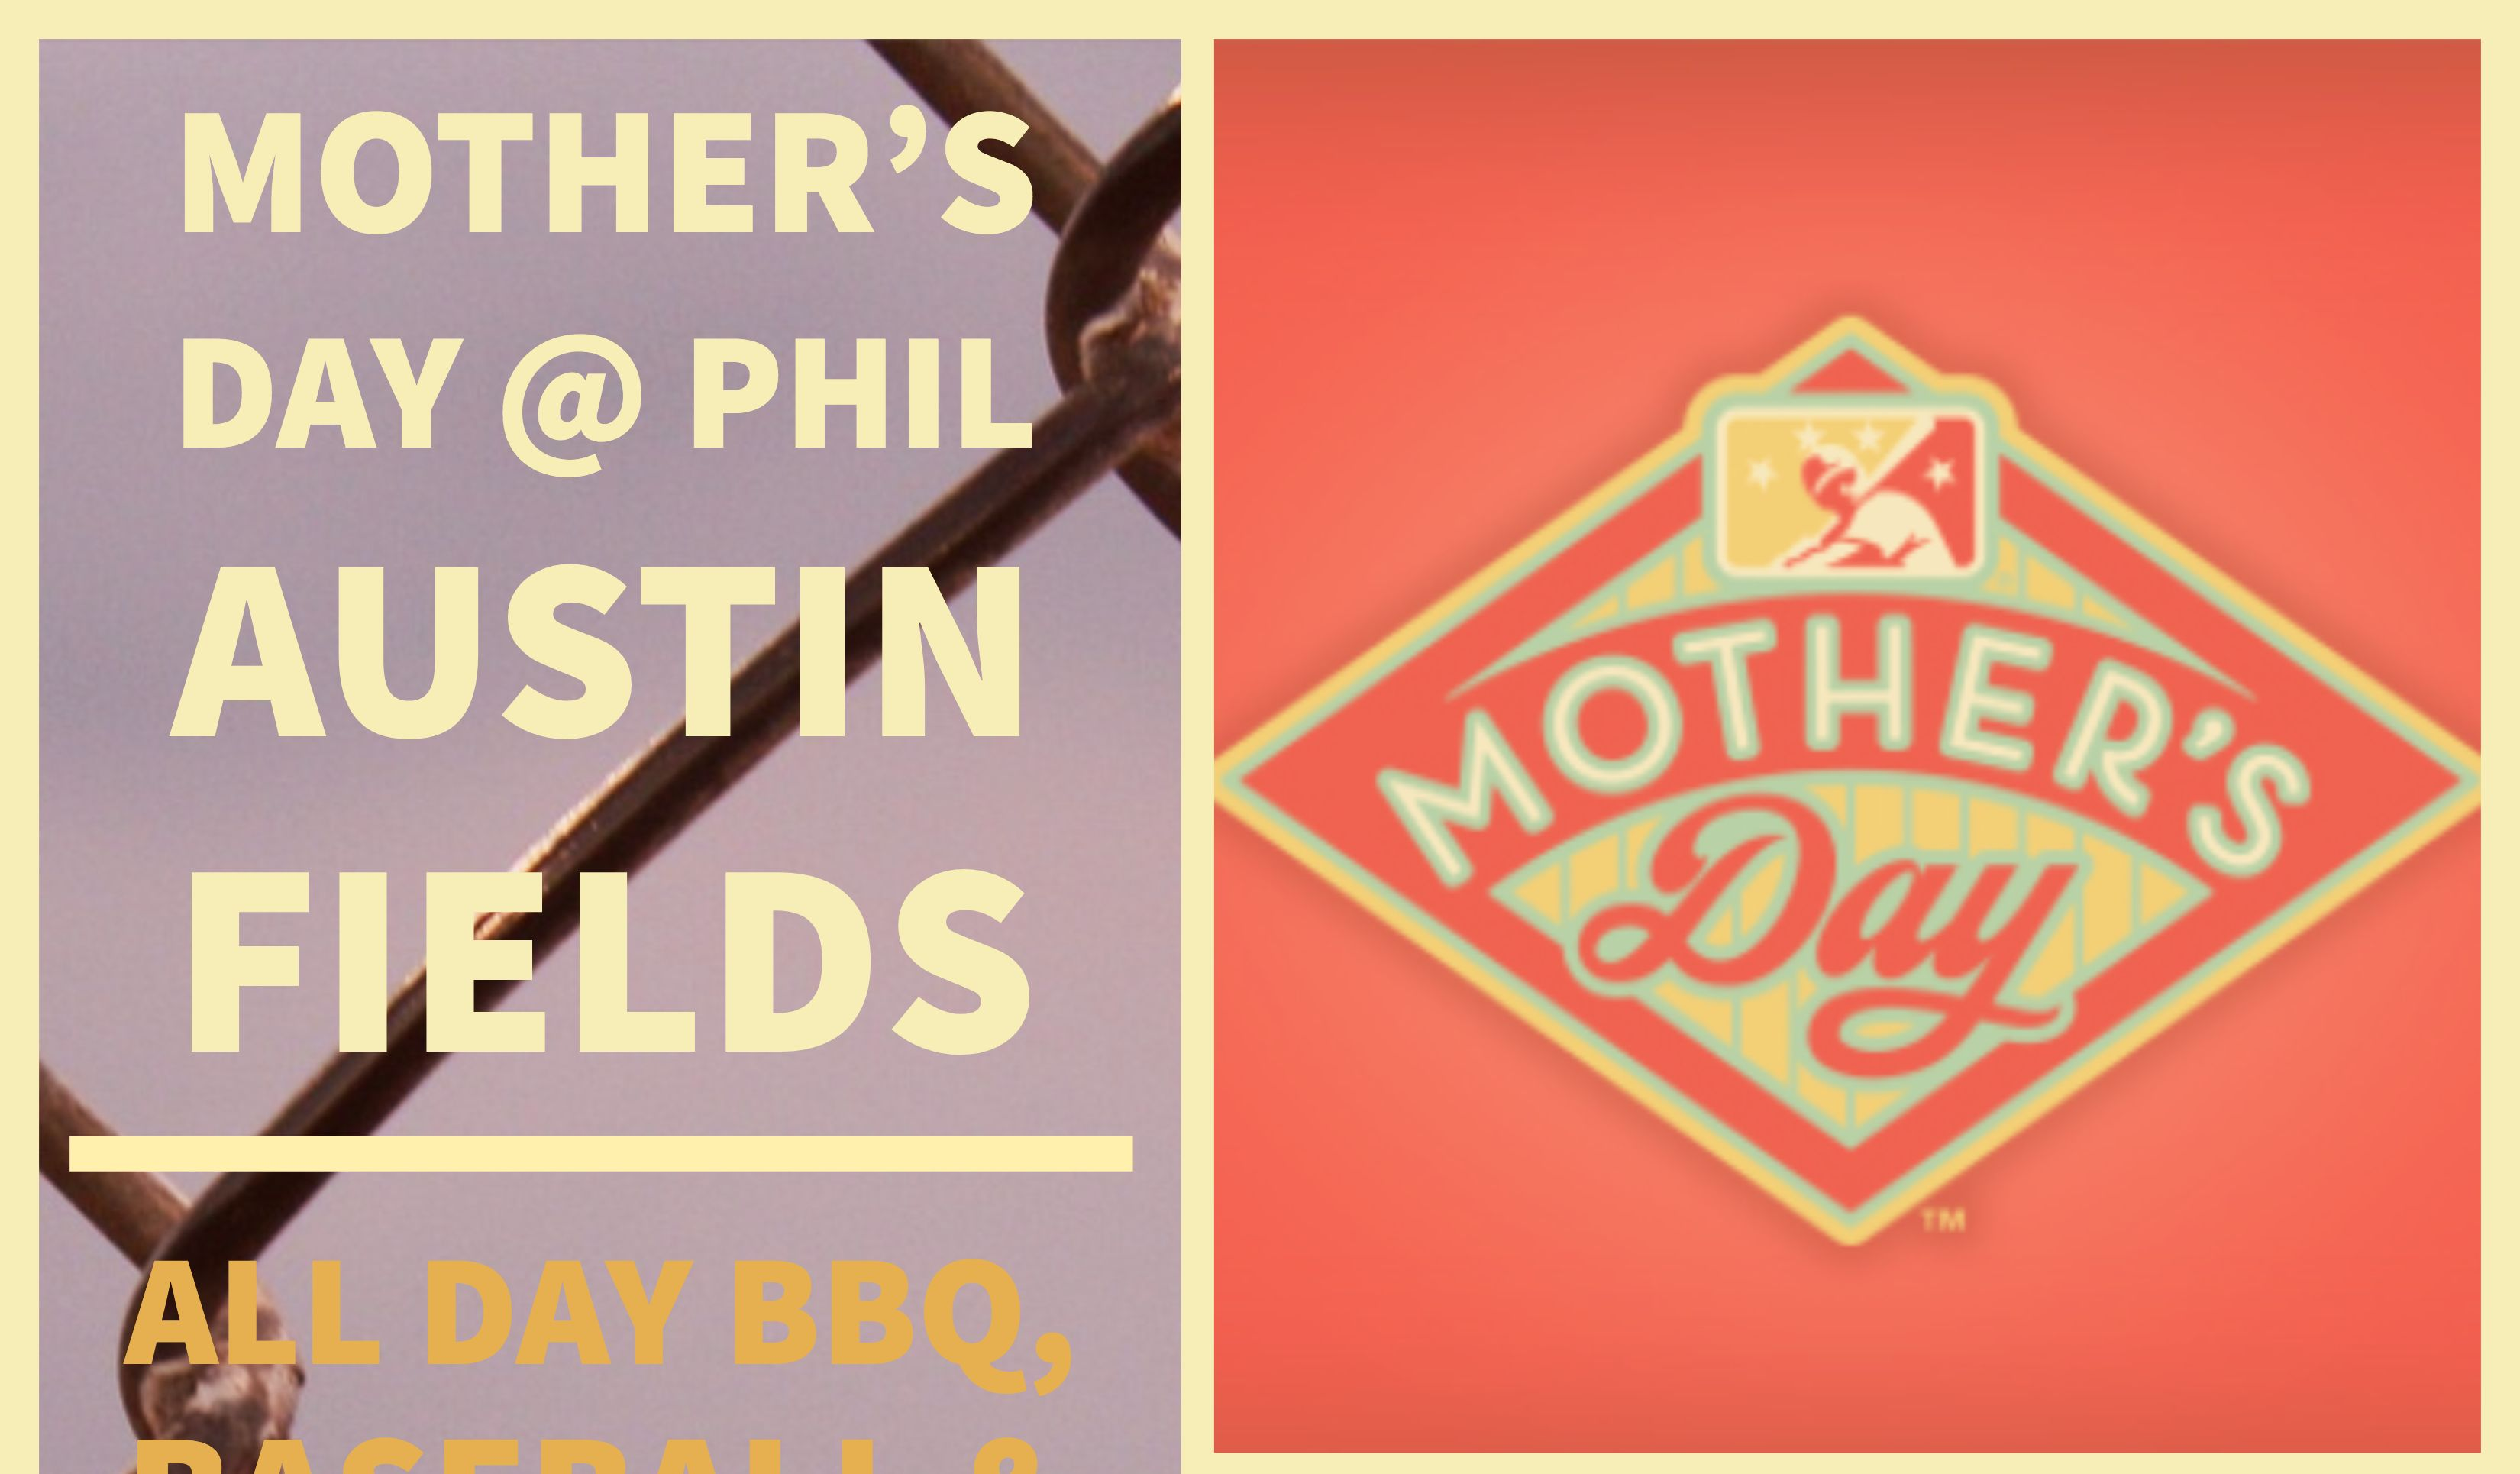 Mother's Day @ Phil Austin